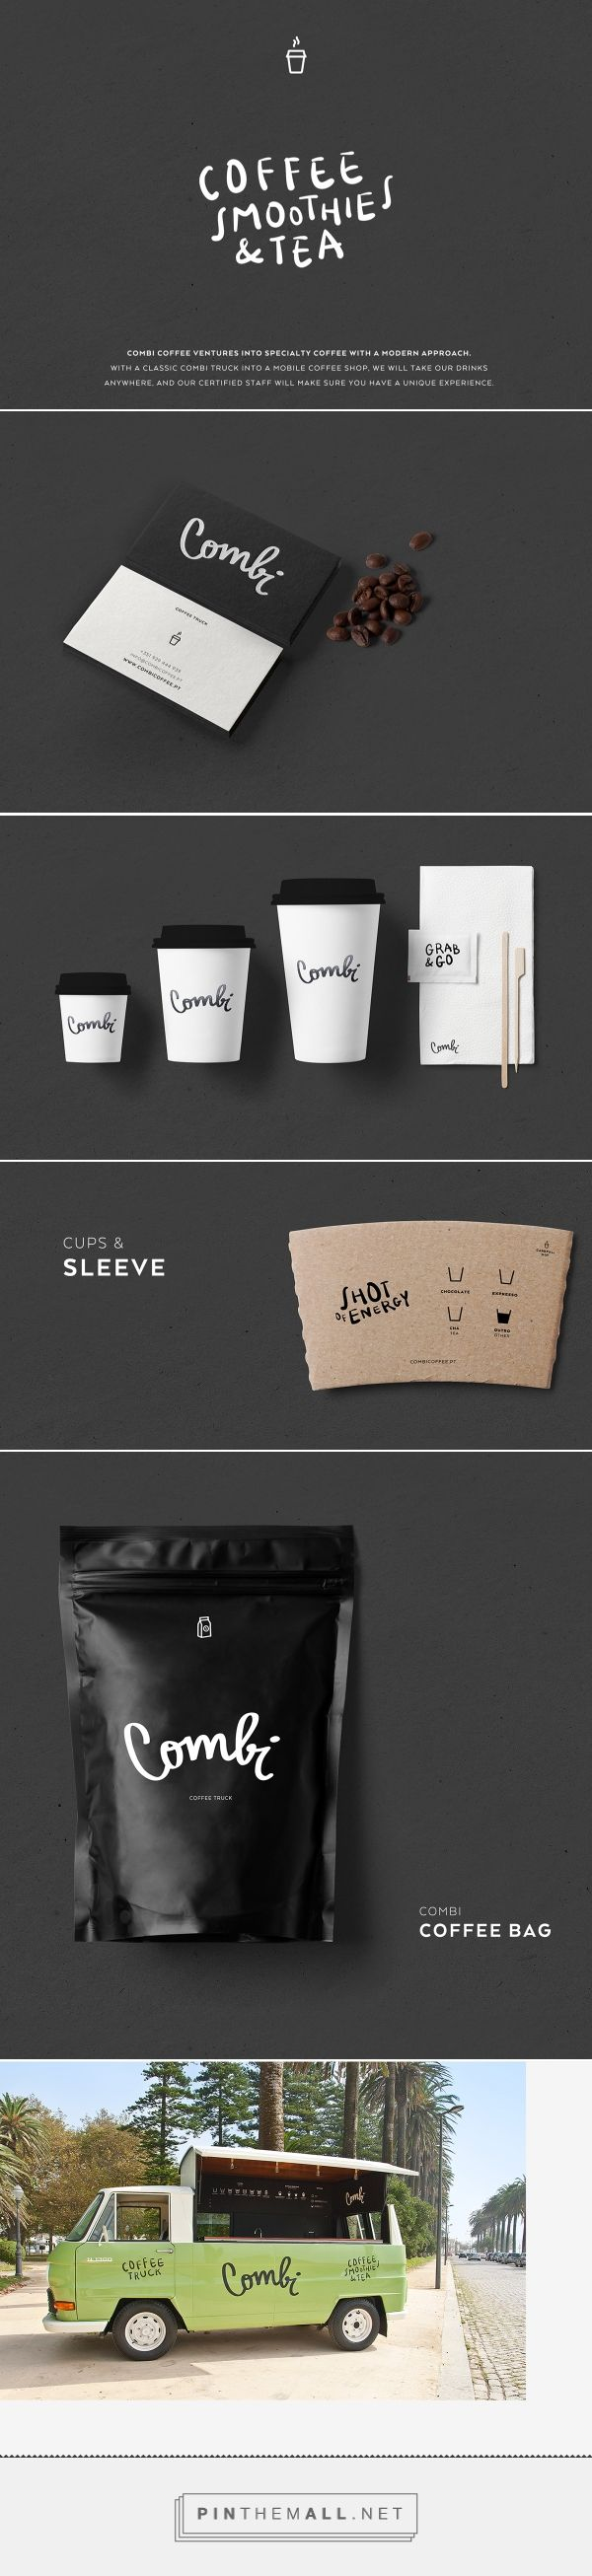 Empaque, branding, icon design and packaging for Combi - Coffee Truck on Behance by 327 Creative Studio curated by Packaging Diva PD. Reflecting current trends on food/drinks mobile trucks in Porto. With a classic Combi truck, our challenge was to turn it into a mobile coffee shop with a strong and efficient branding and packaging.